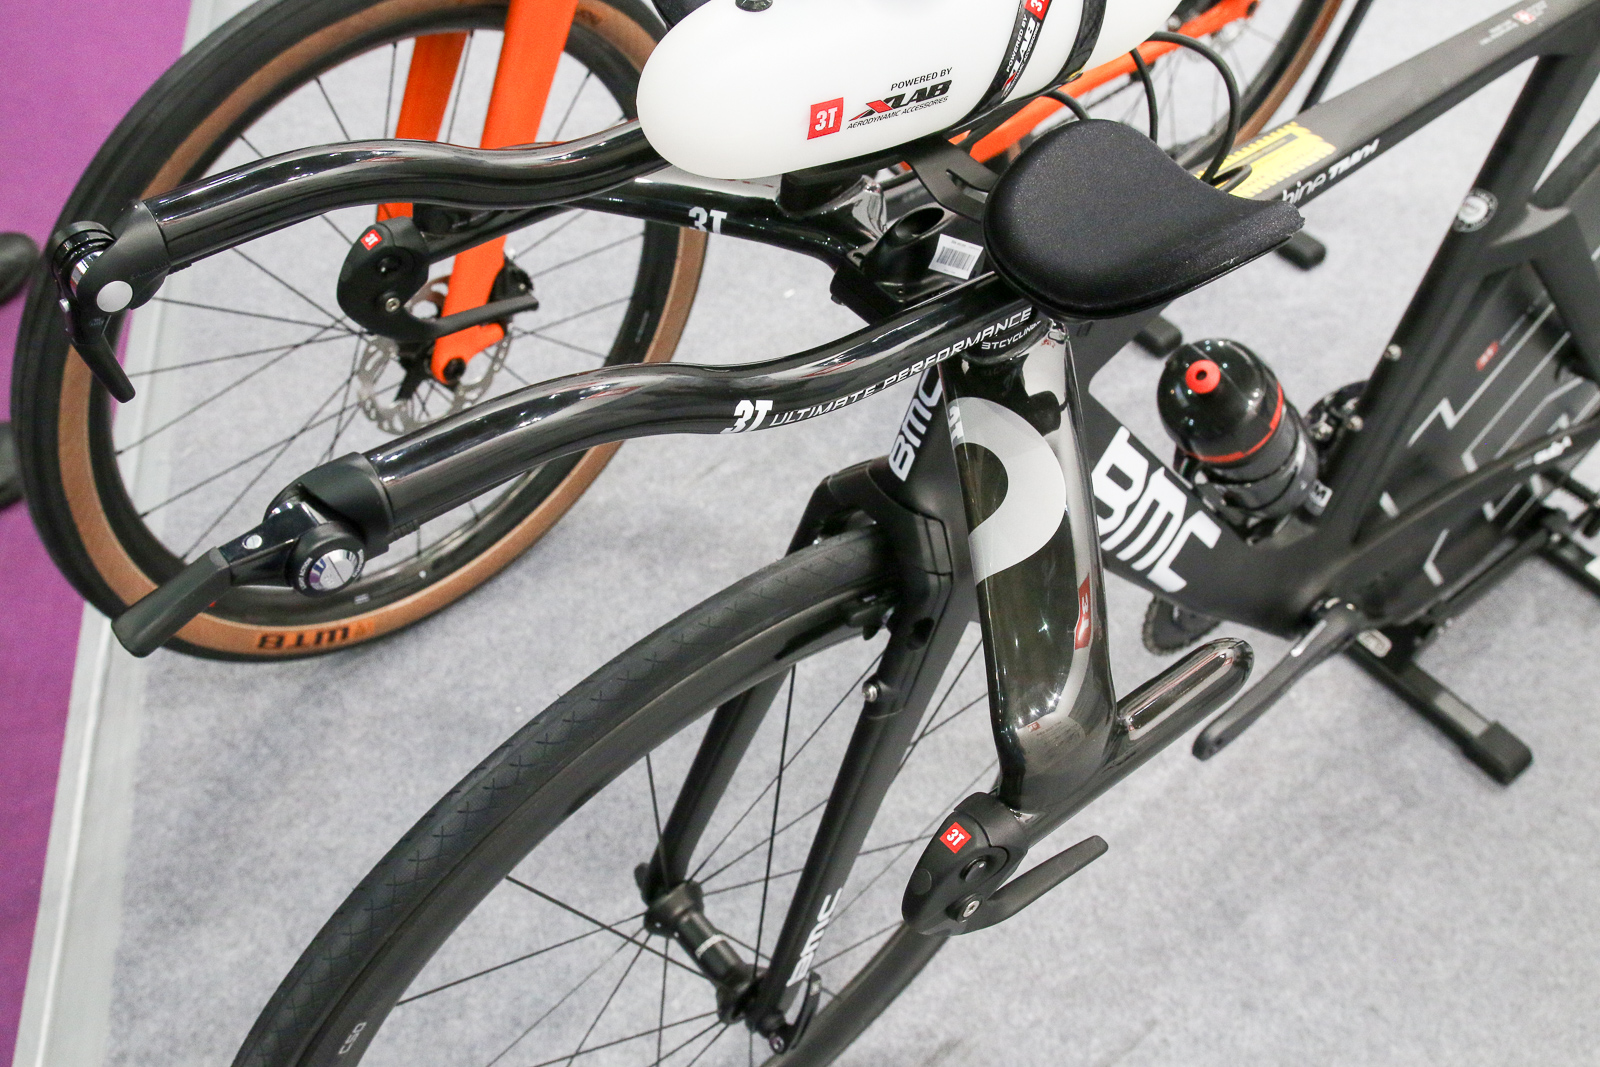 Tpe16 3t Introduces Length Adjustable Stems And Road Plus